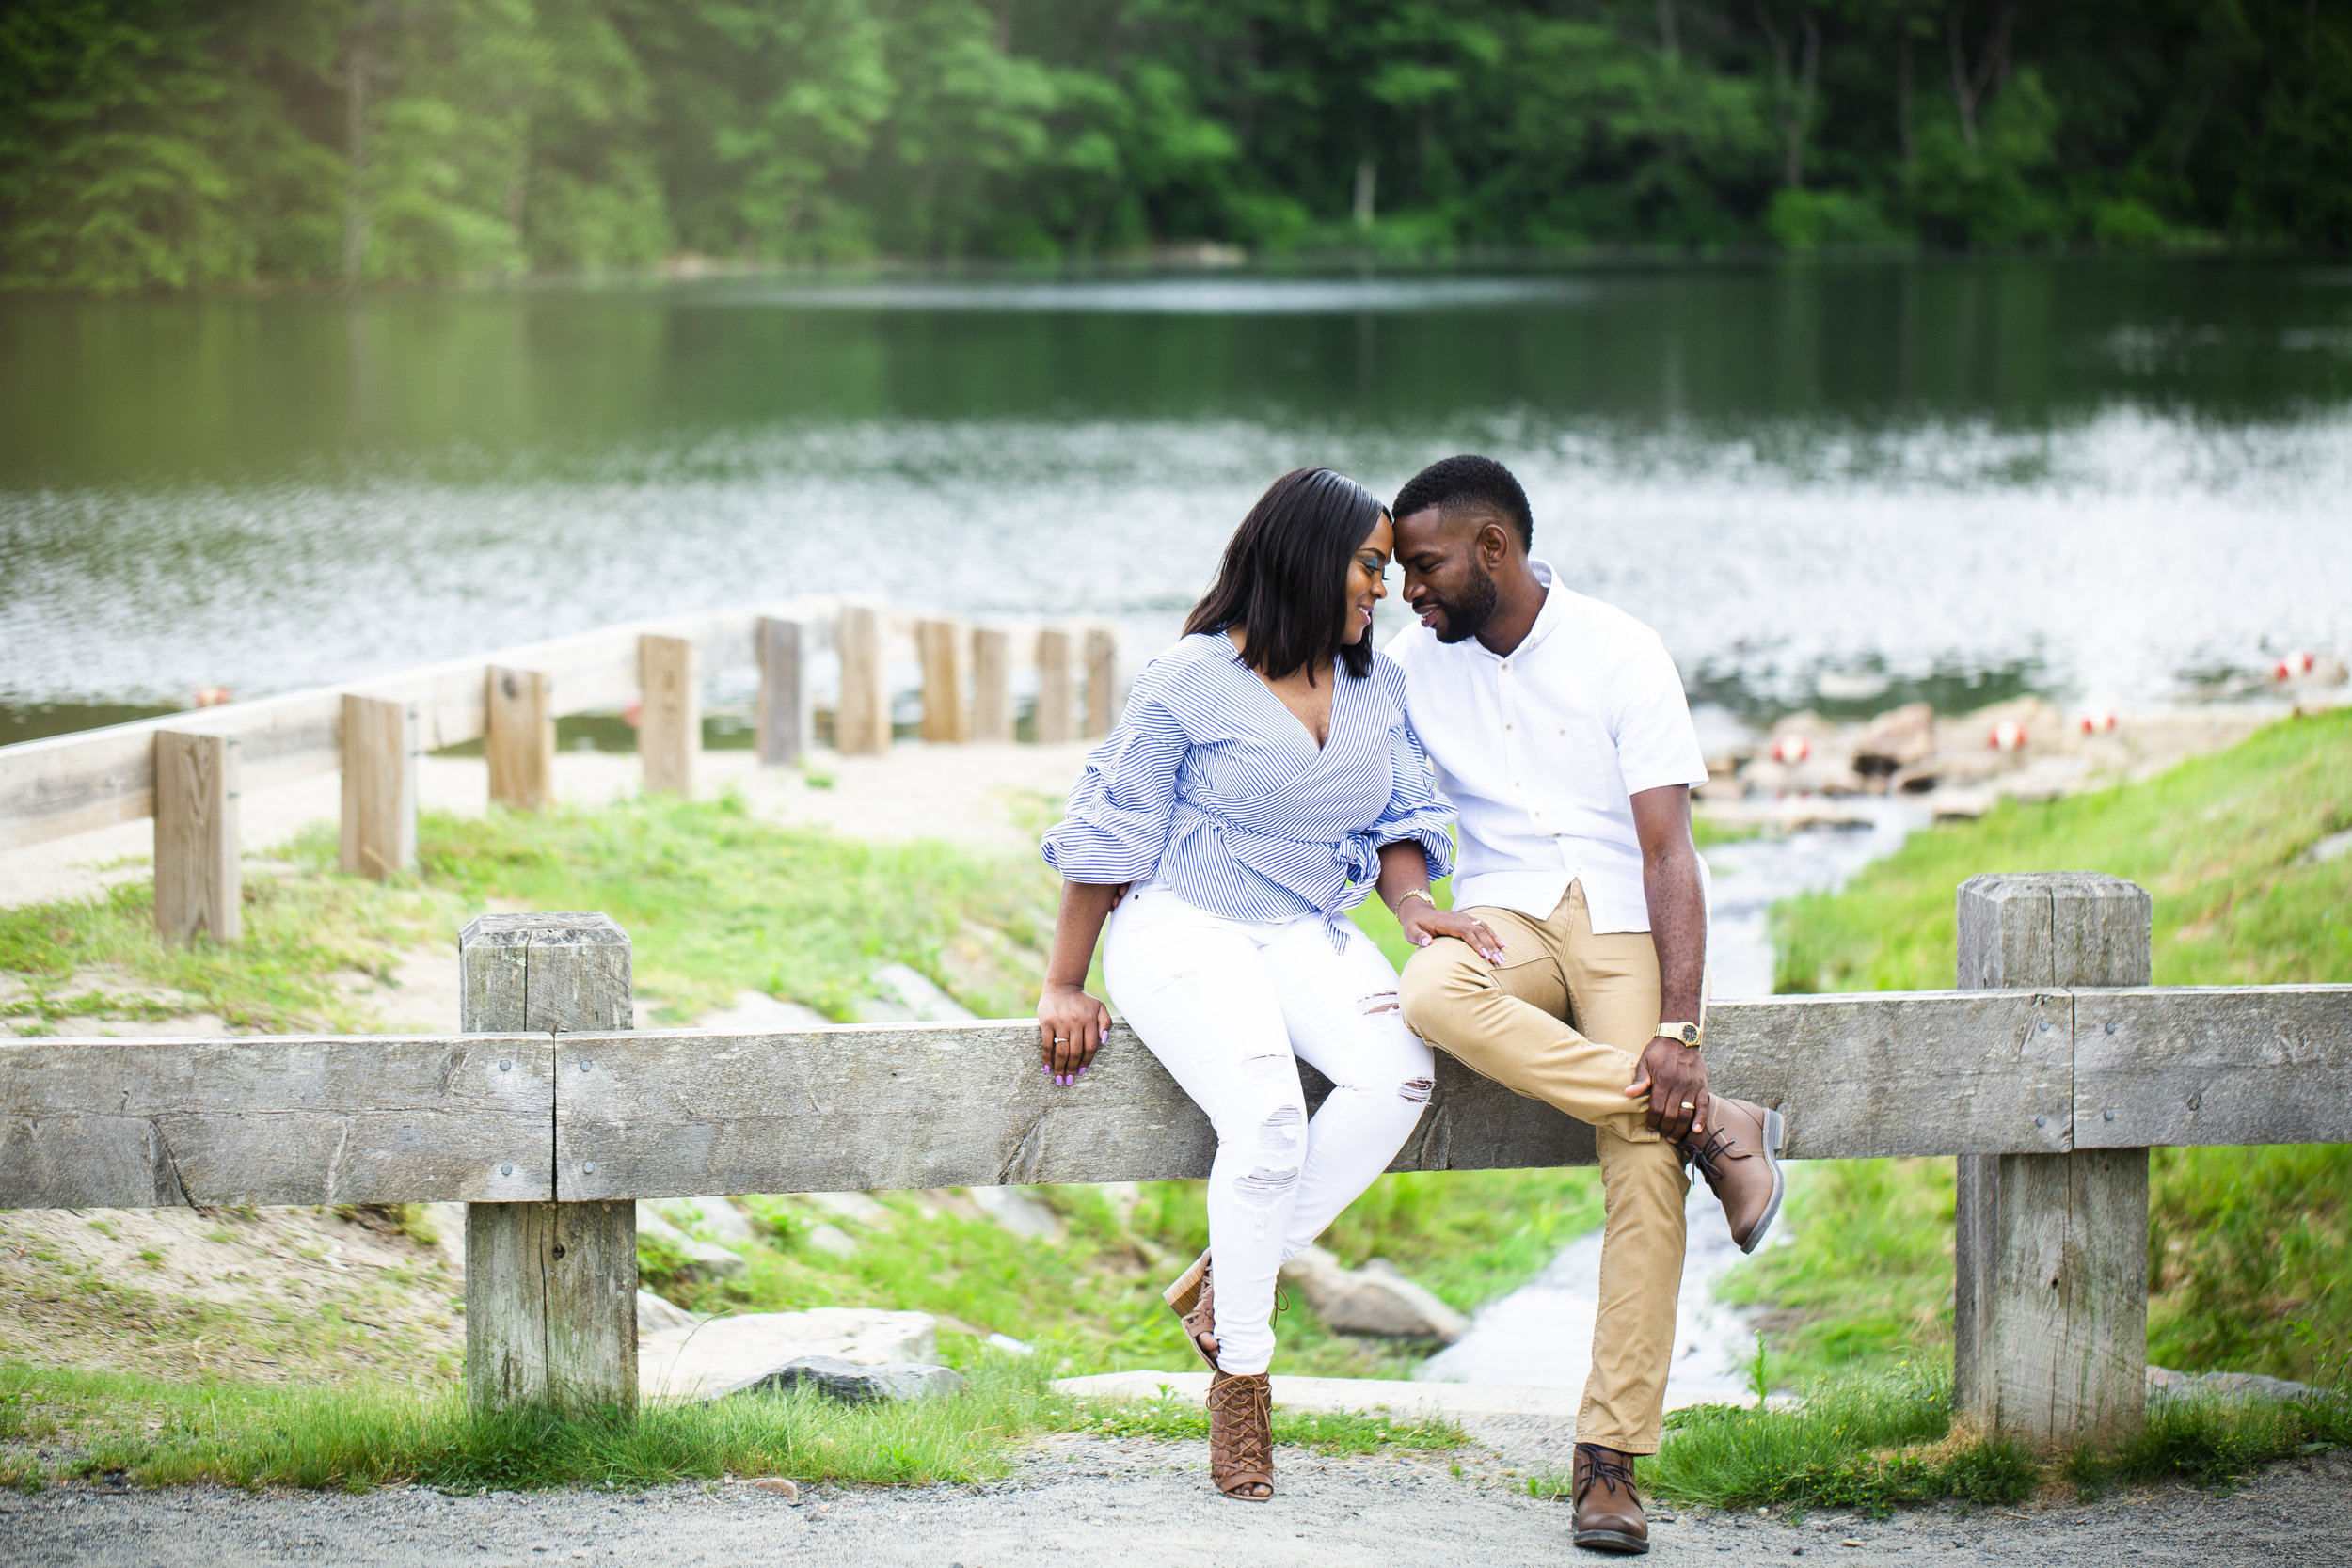 314A6324+Giovanni The Photographer+Best Boston Couples Session +Houghton's Pond Milton.jpg